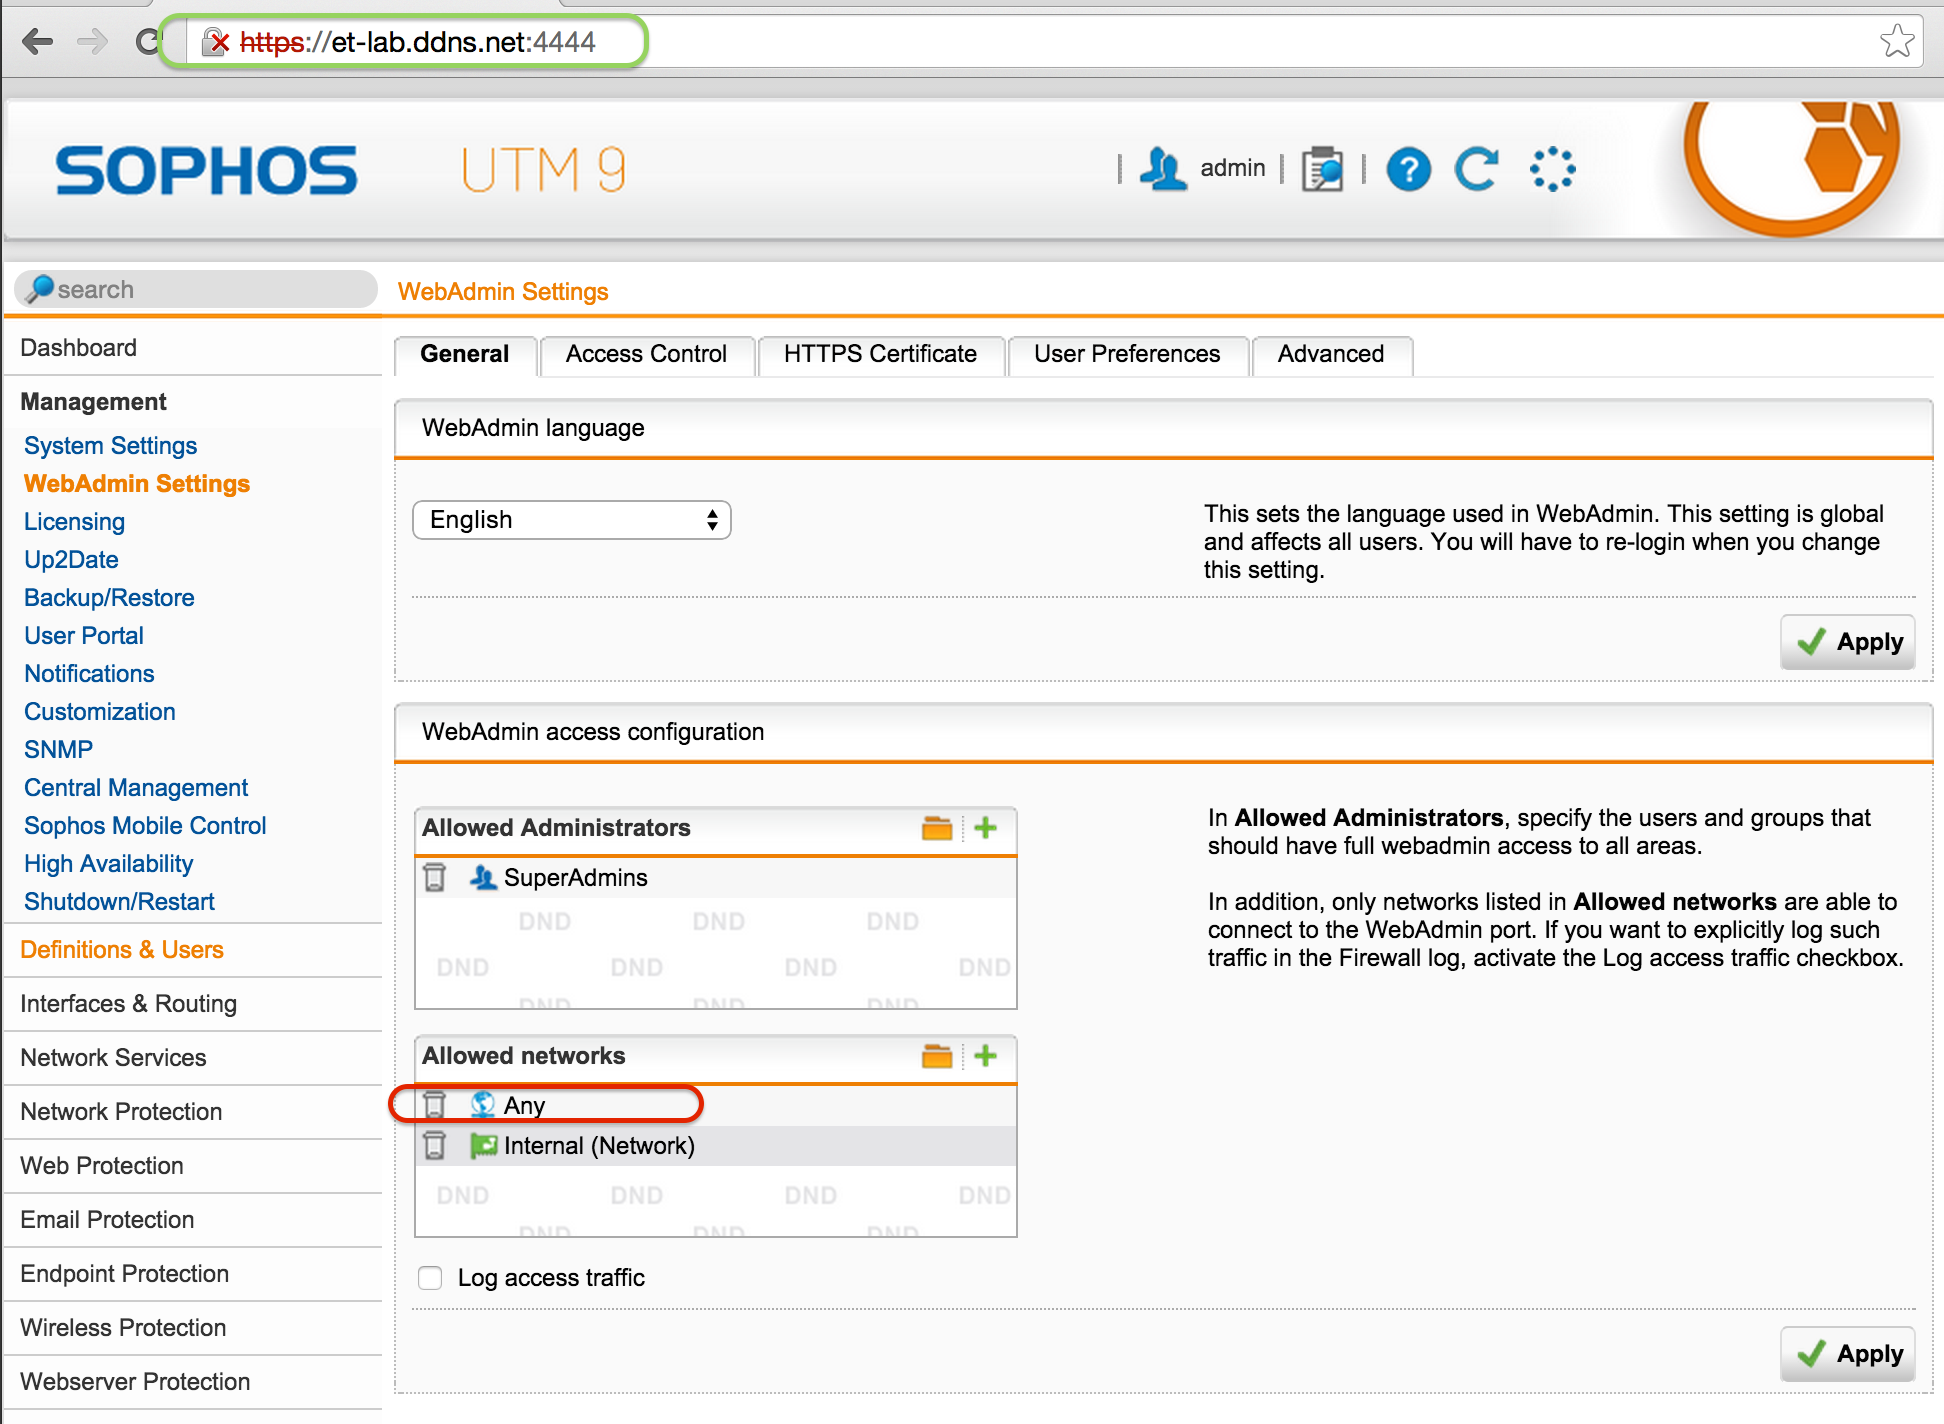 How to Configure Dynamic DNS on Sophos UTM